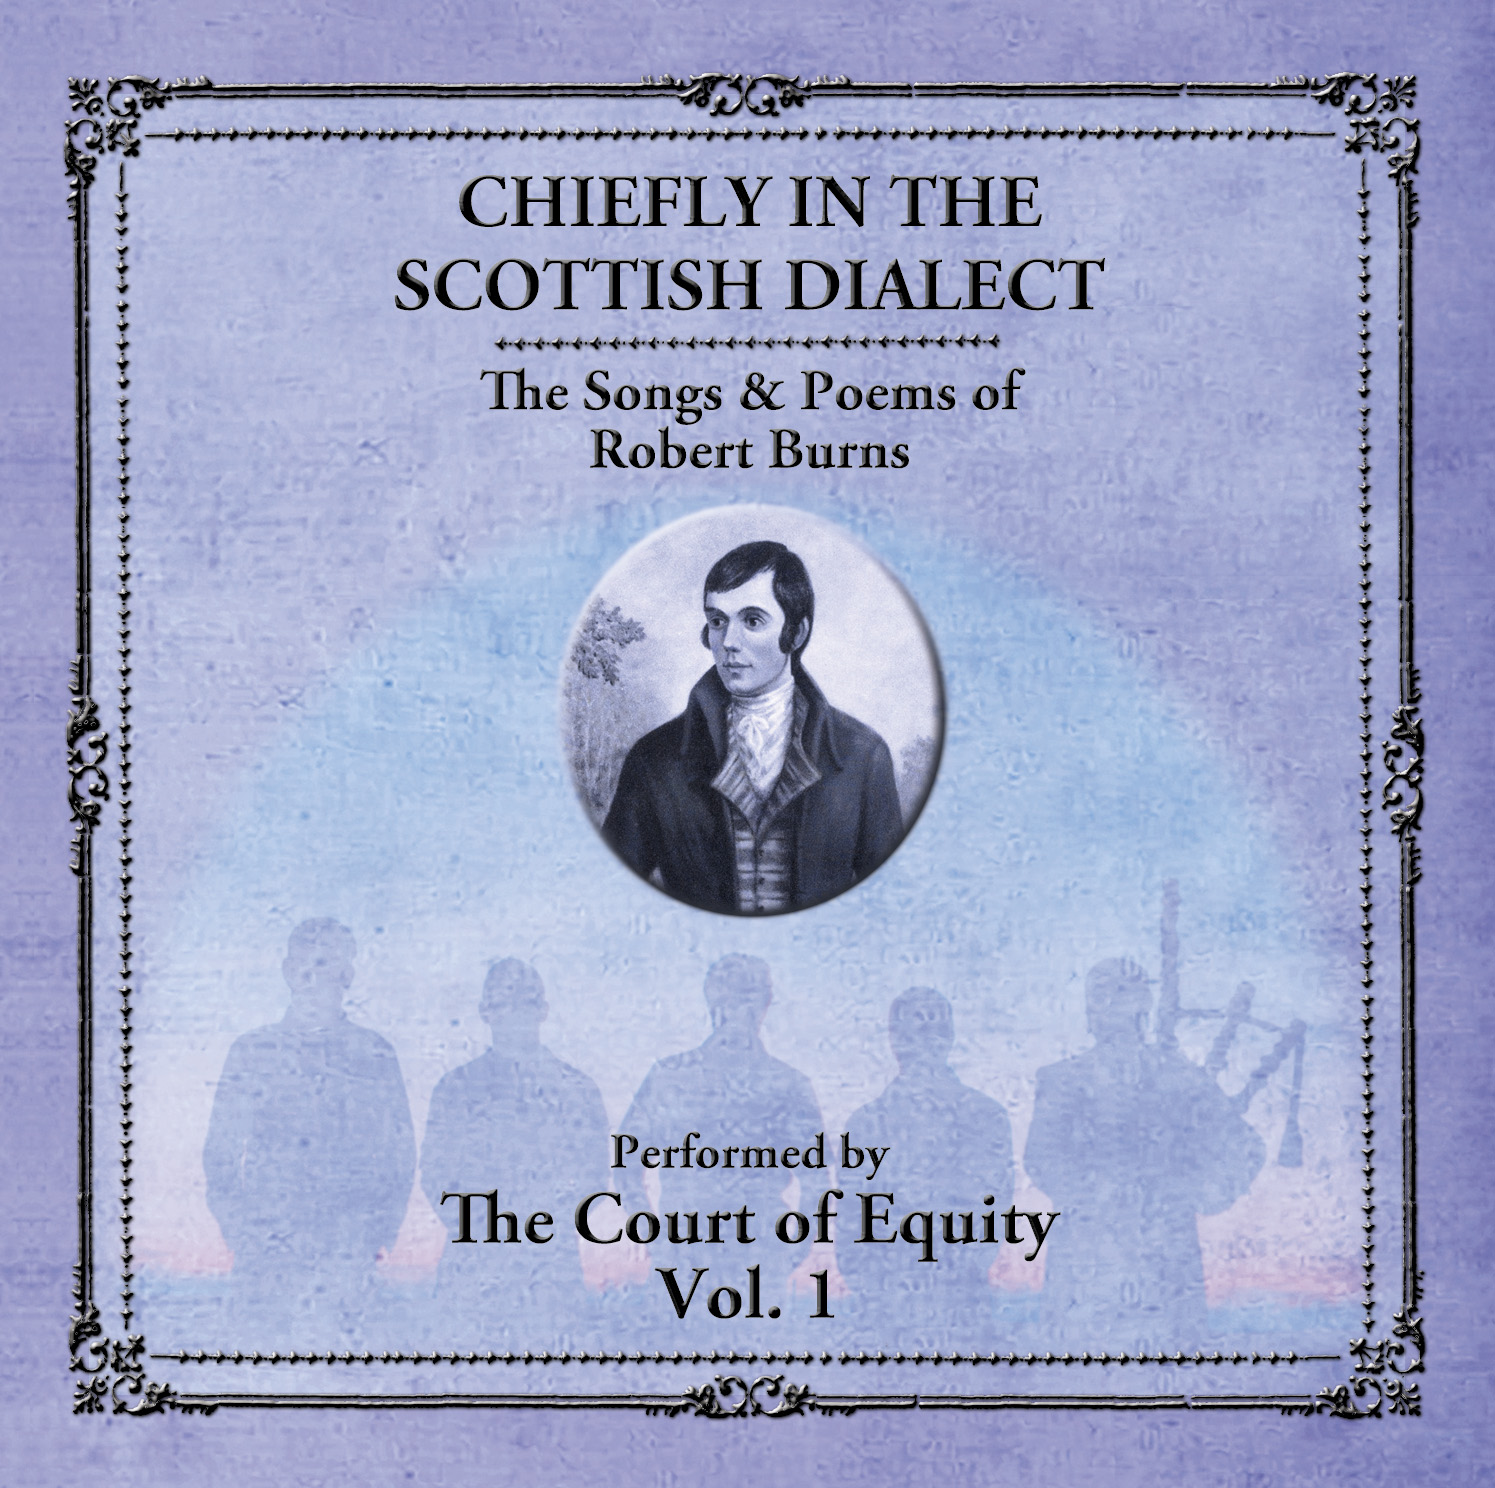 Chiefly in The Scottish Dialect